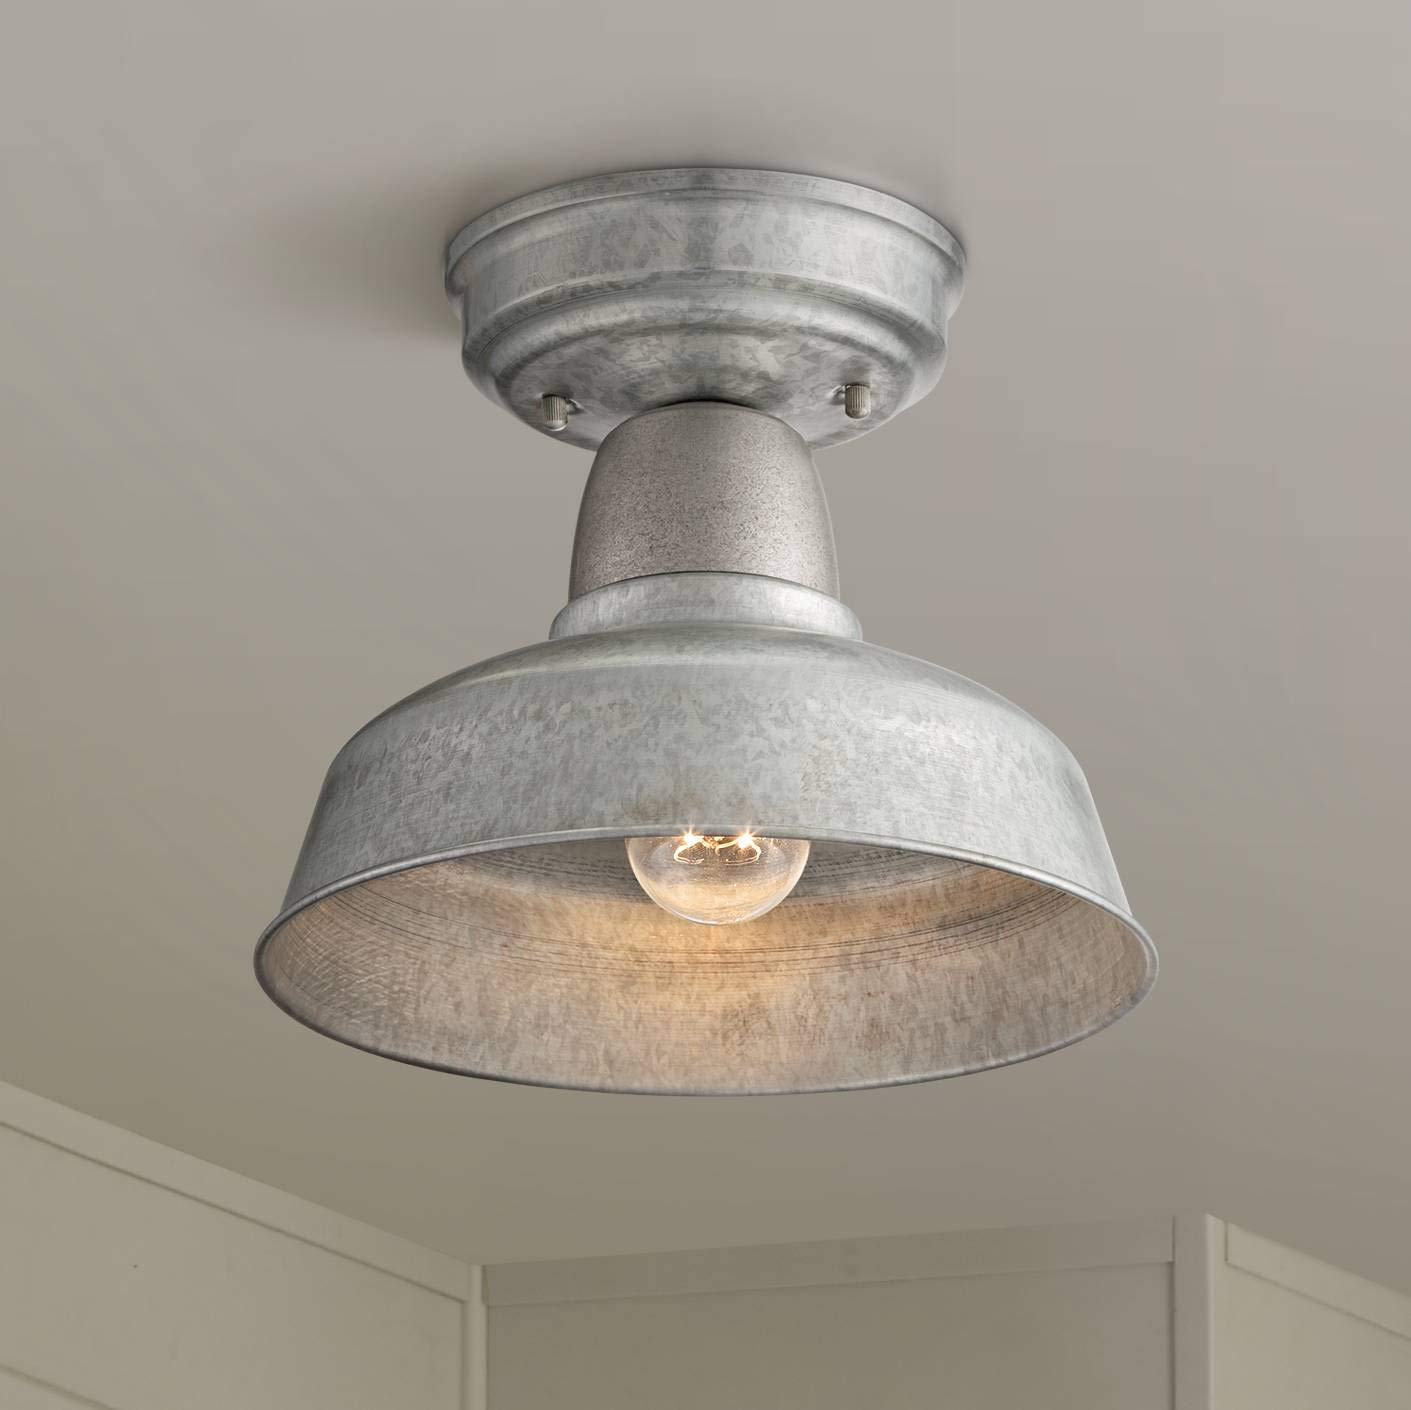 Urban barn rustic outdoor ceiling light fixture semi flush farmhouse galvanized 10 1 4 for porch kitchen john timberland amazon com